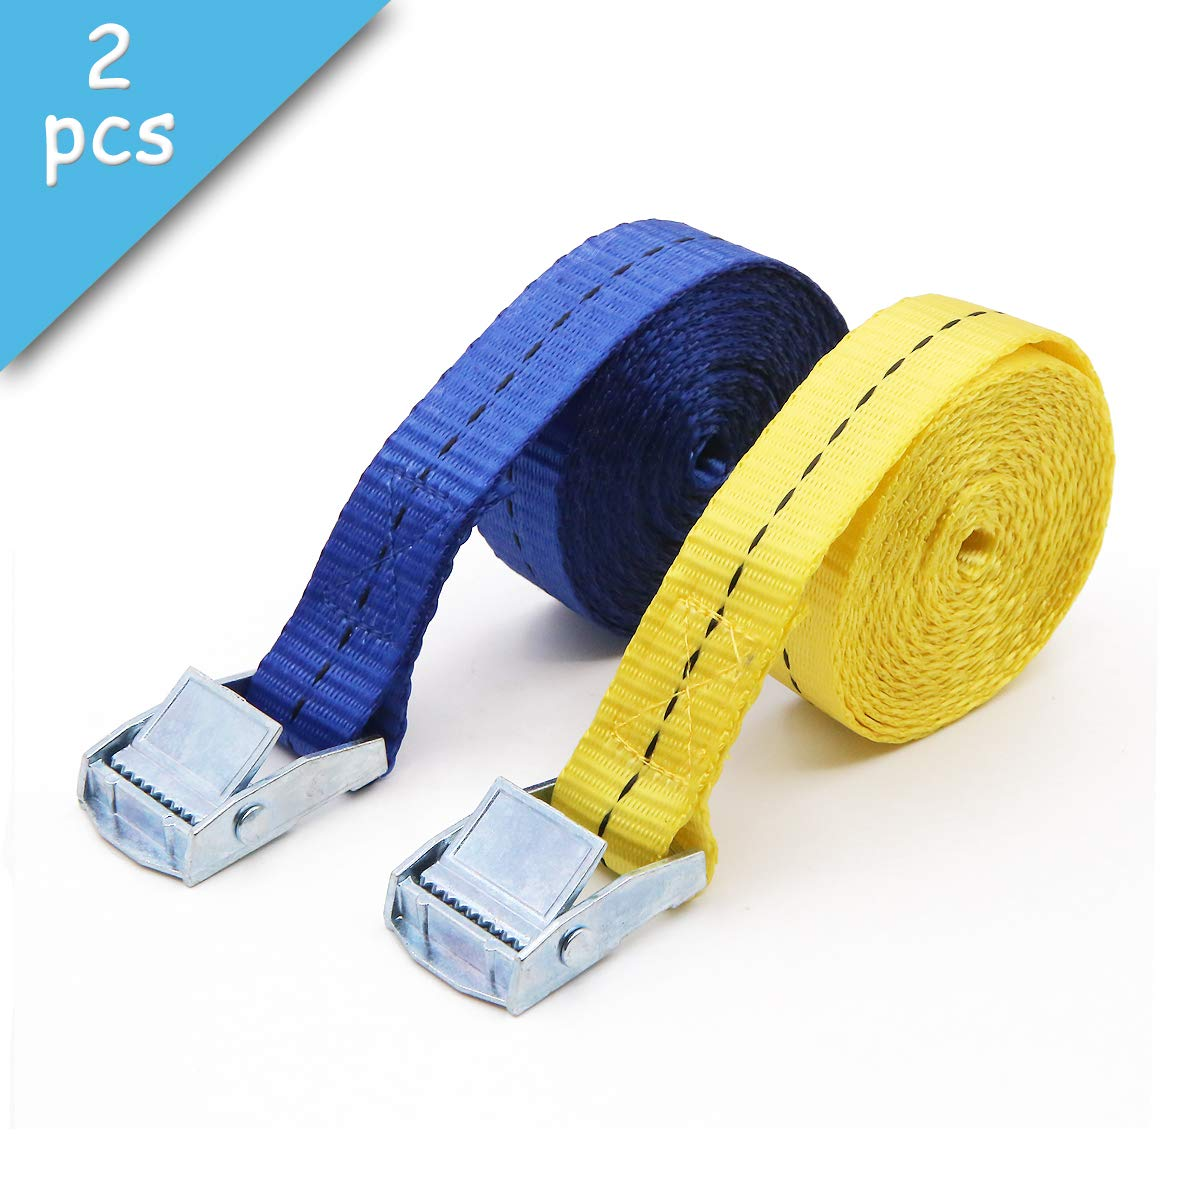 2 Pack of 6.5 Foot Cam Buckle Lashing Straps(Blue and Yellow) Tie Down Straps for Carriers Luggage Cargo Dawa